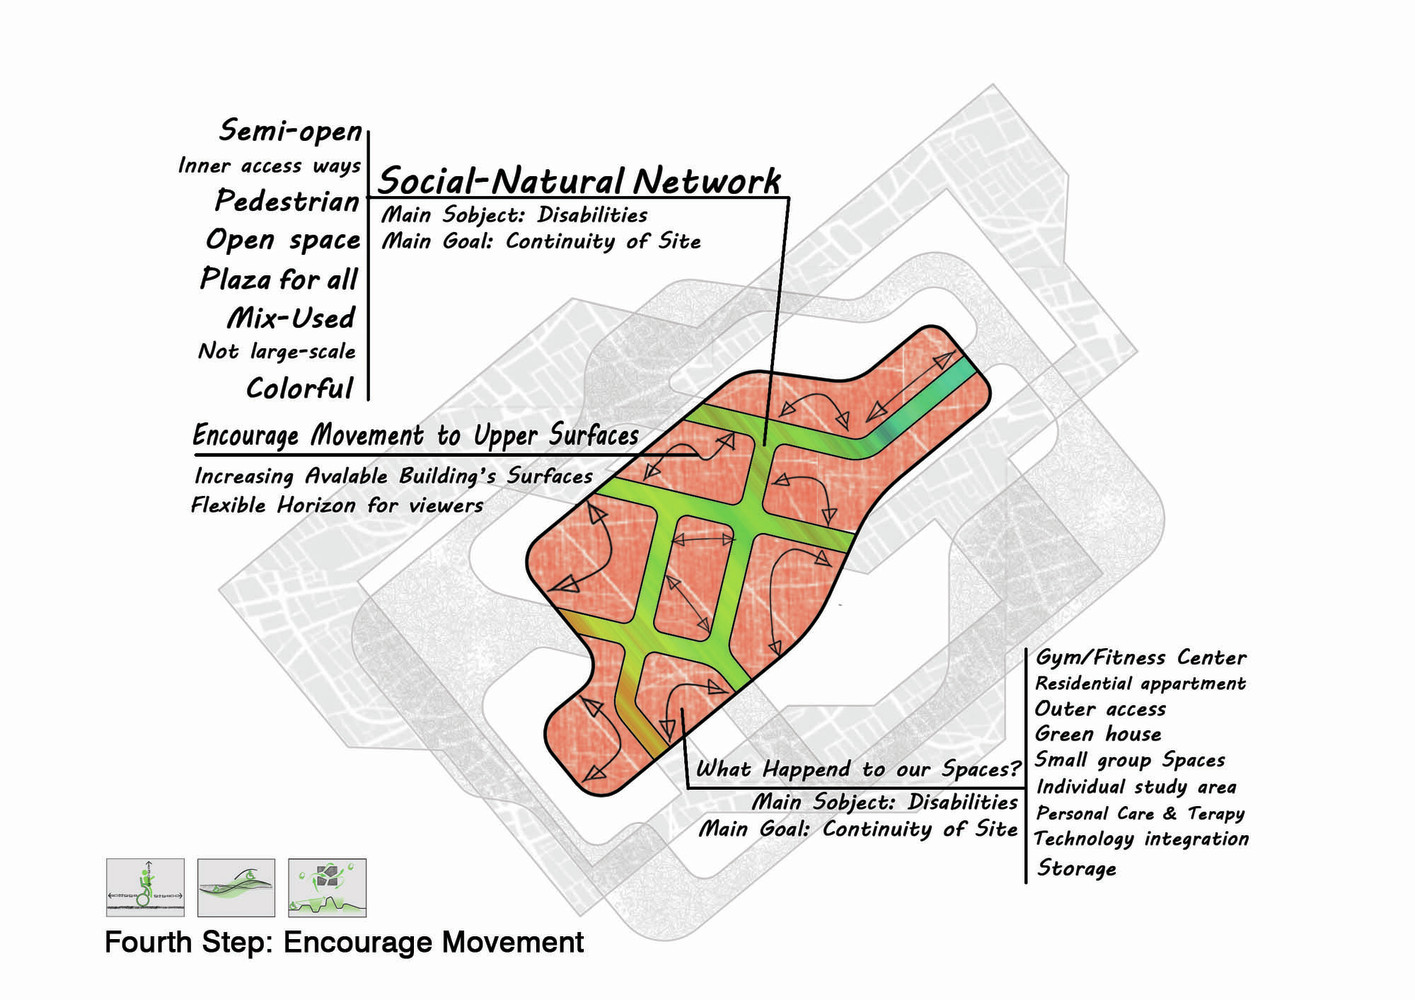 Gallery Of Winning Entry For Design Matters 2 Ideas Competition Personal Space Diagram Ali Musavidiagram 04